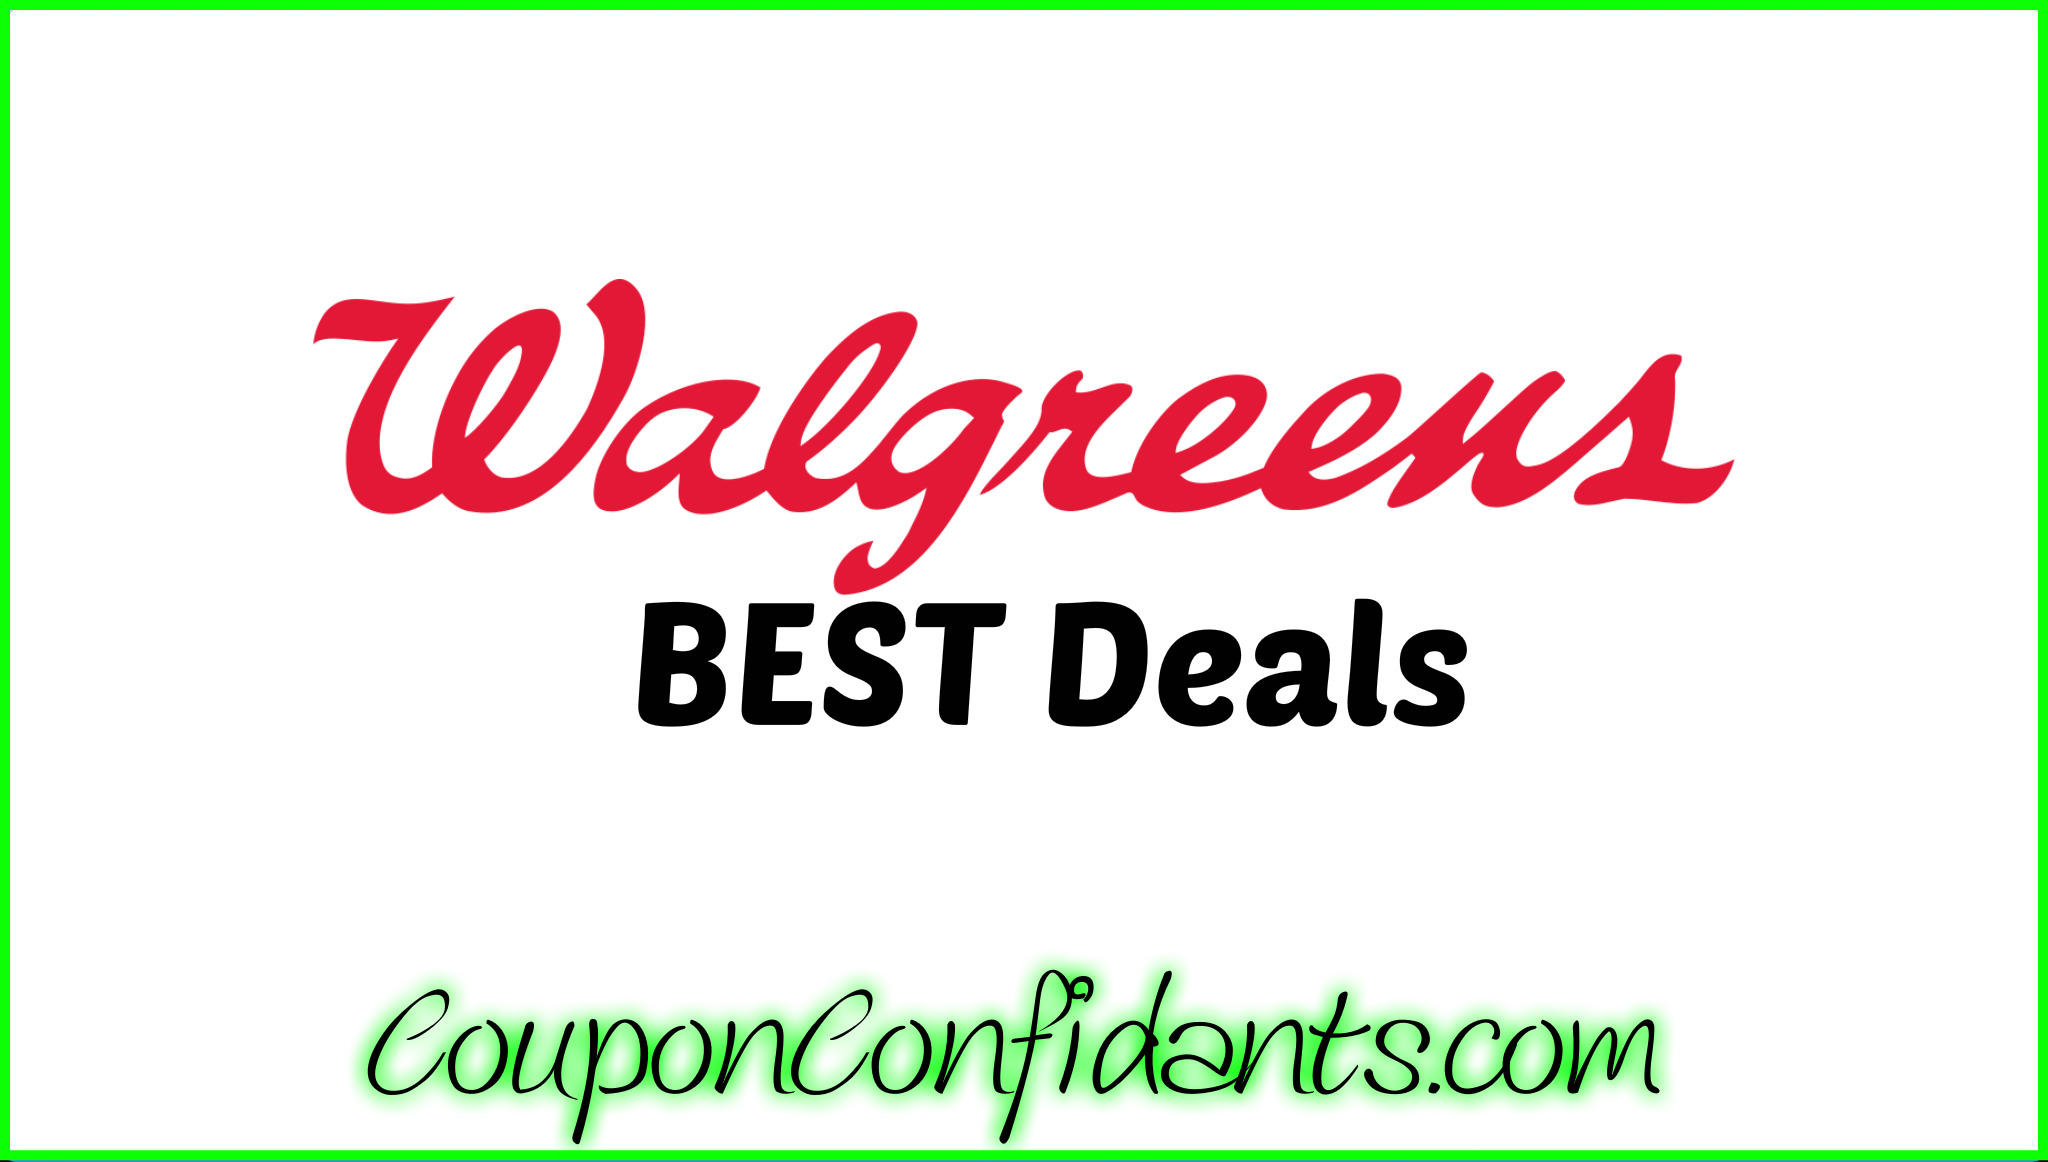 Walgreens - Feb 25 - Mar 3